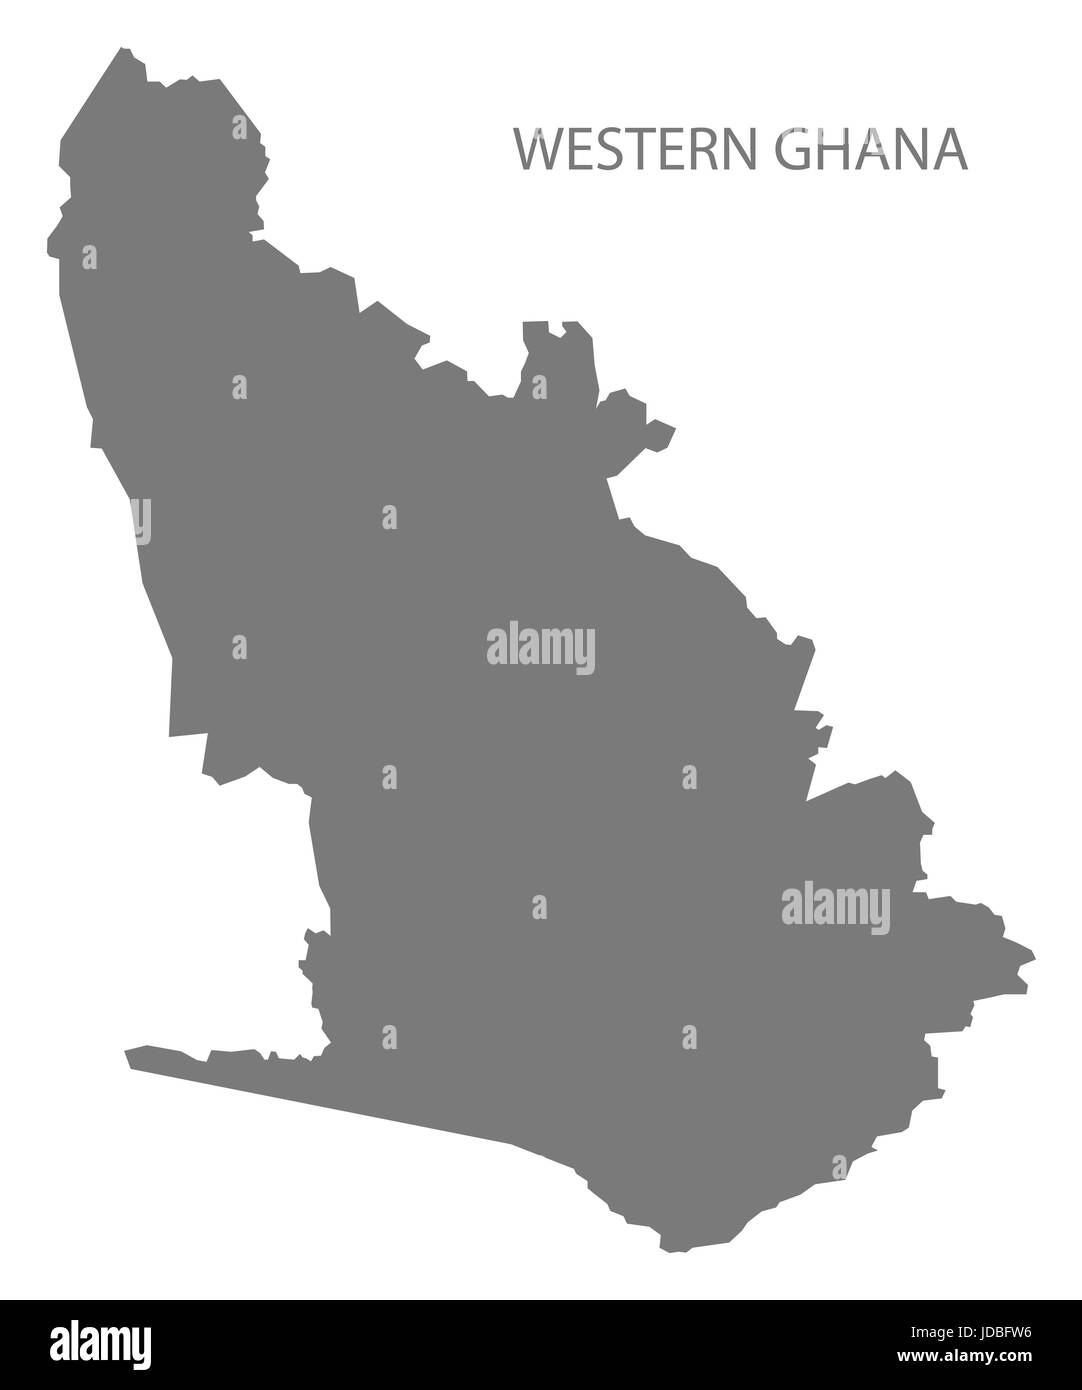 Western Ghana map grey illustration silhouette - Stock Image